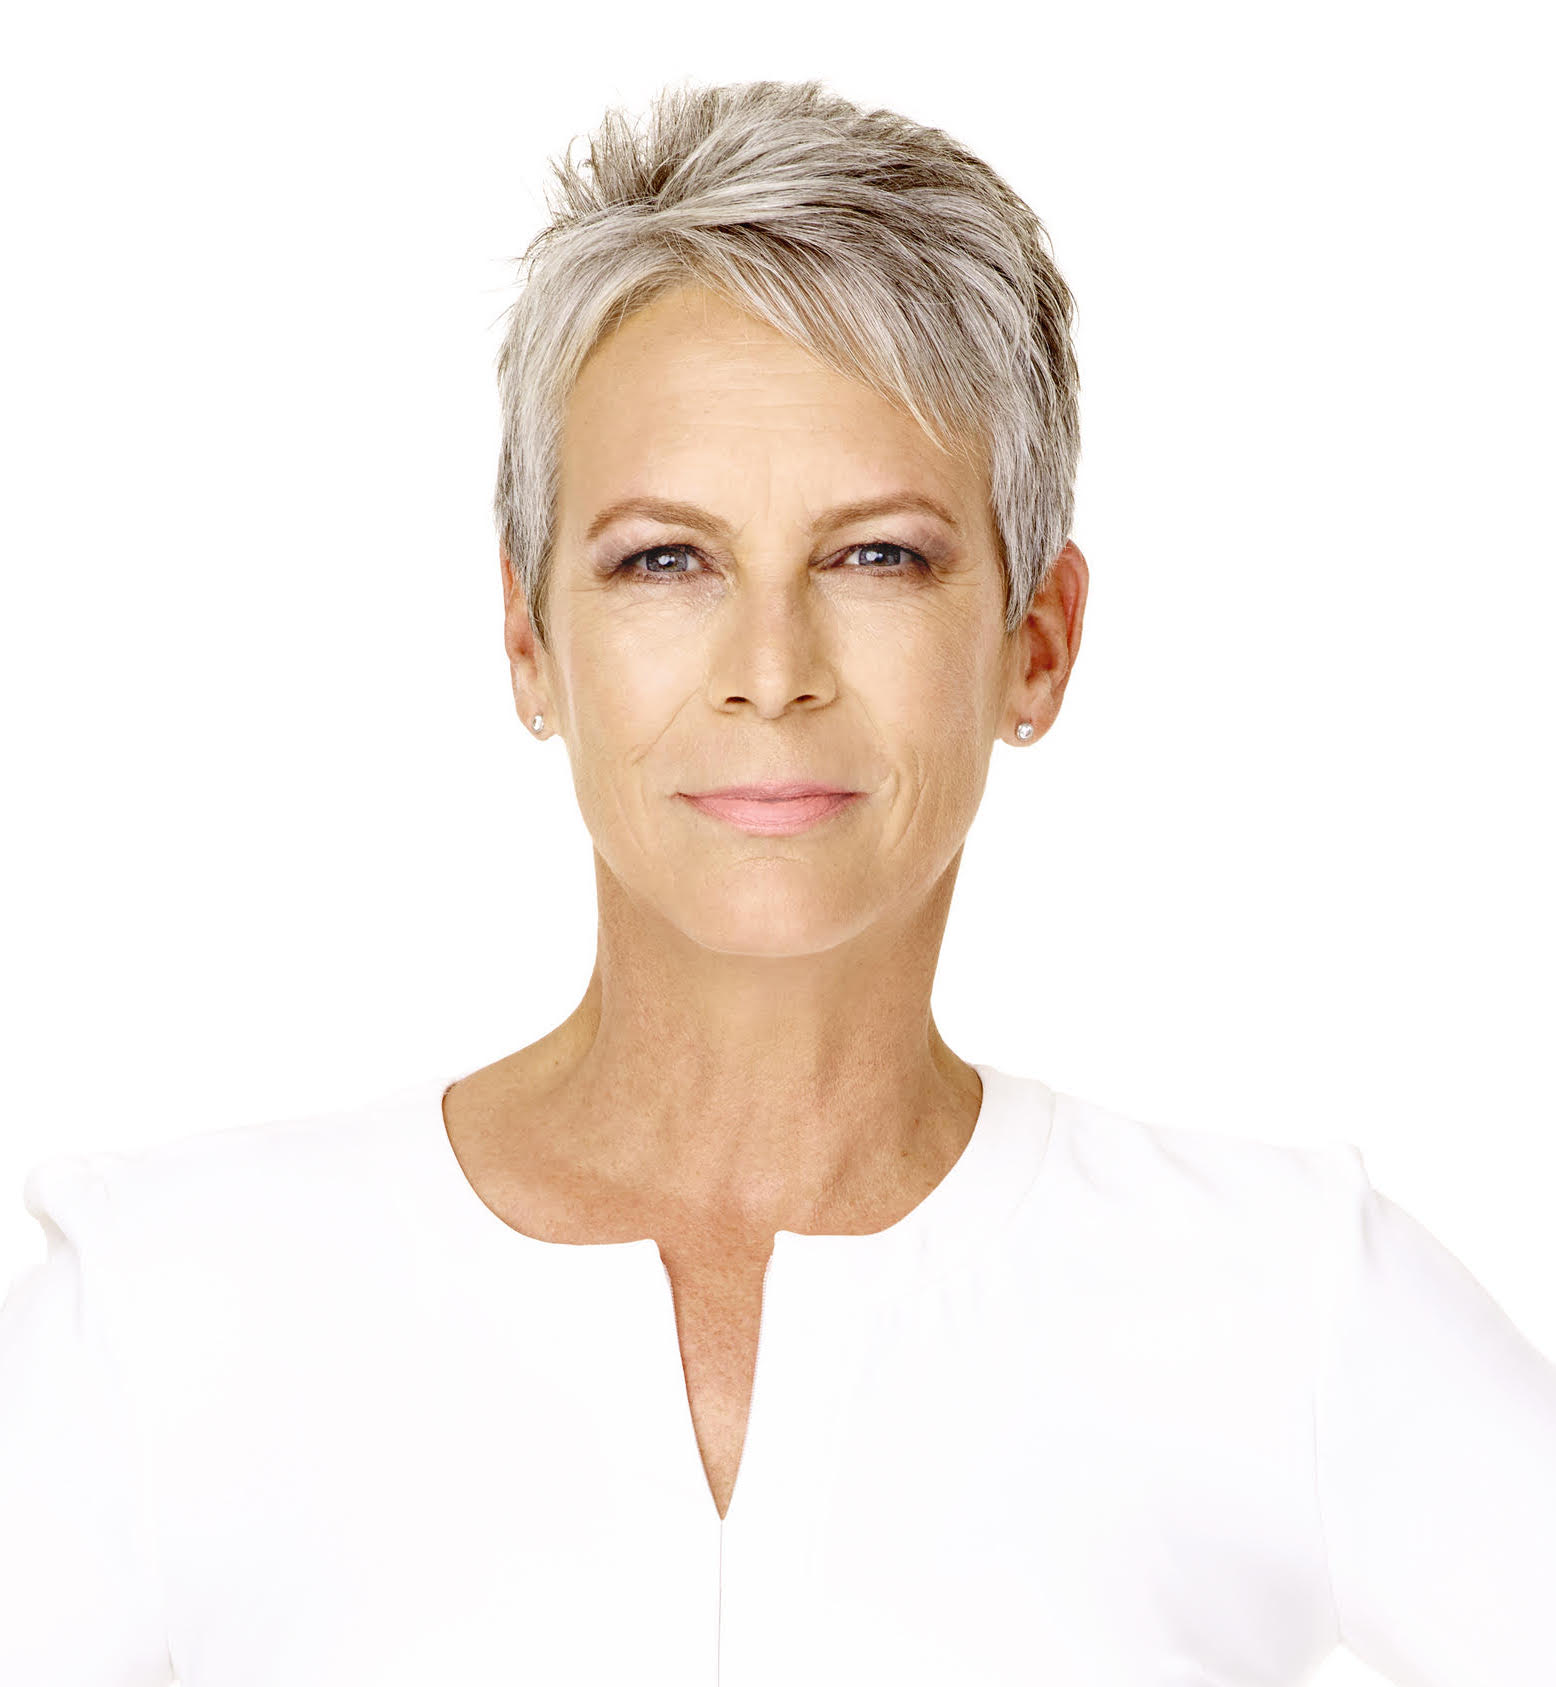 [News] Jamie Lee Curtis Signs First Look Deal With Blumhouse